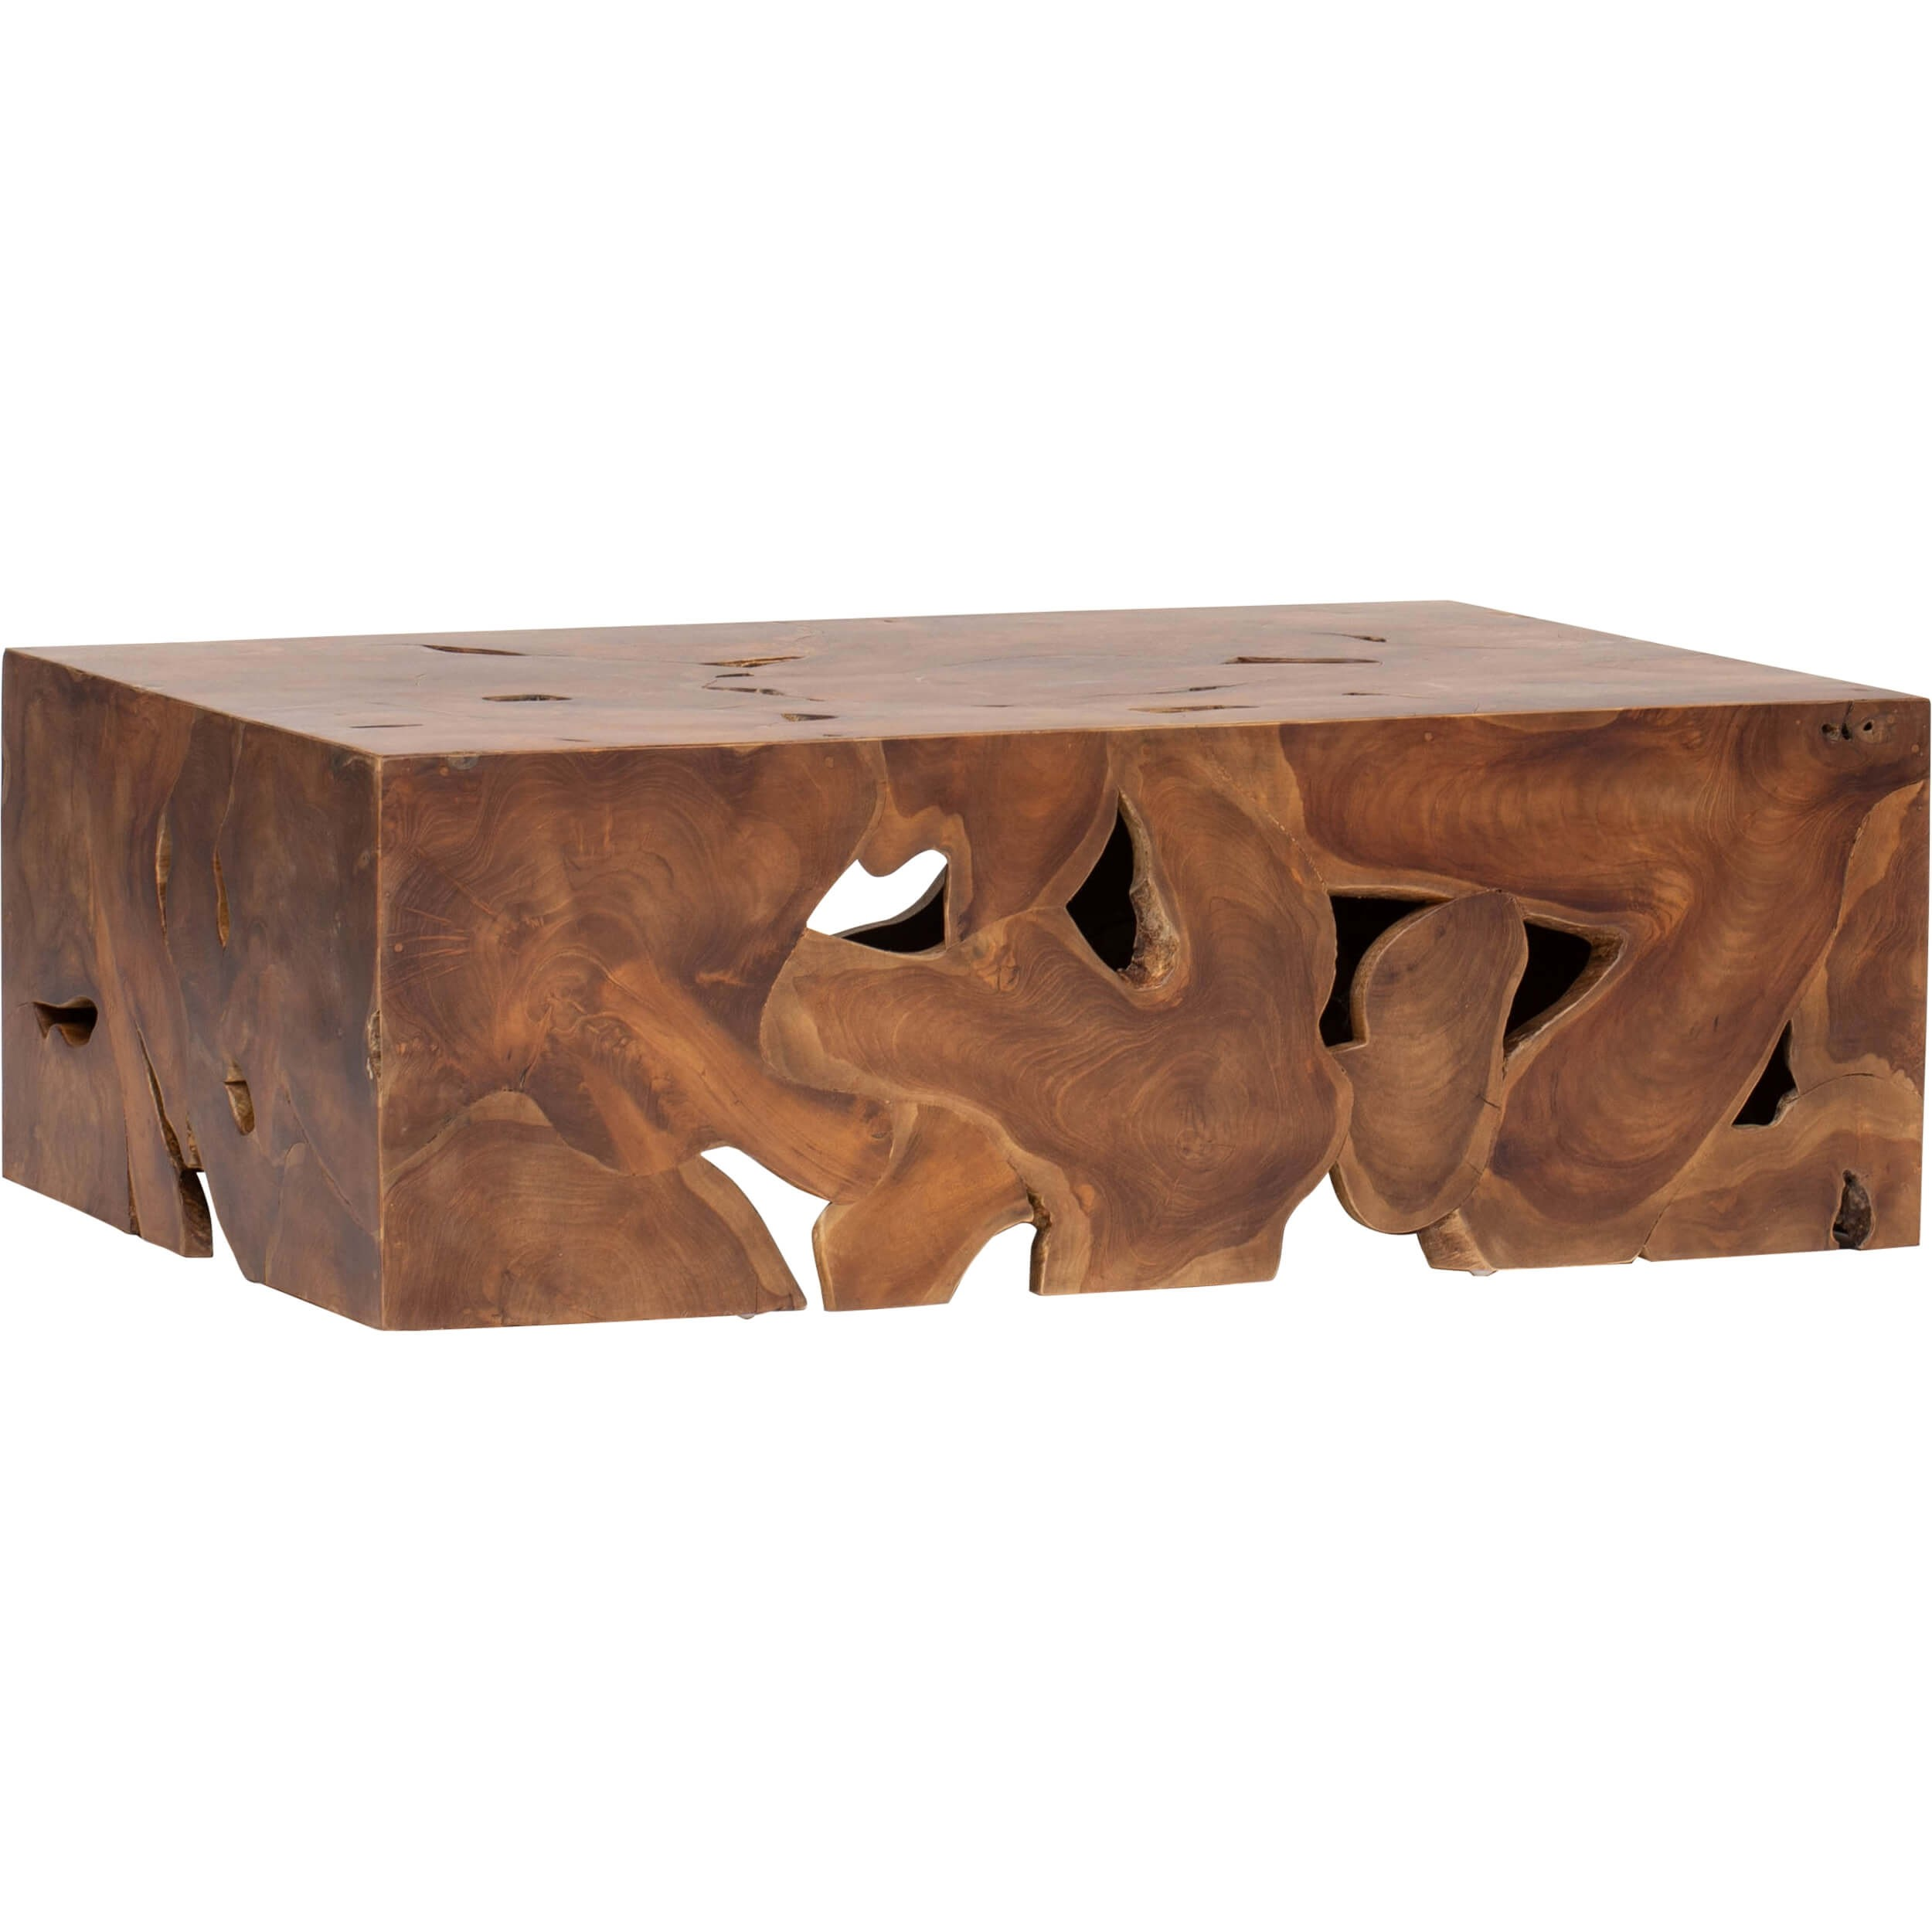 vert coffee table teak block new finish wood accent furniture tables hammered copper side pier clearance dining farm style with bench west elm track order outdoor chairs for